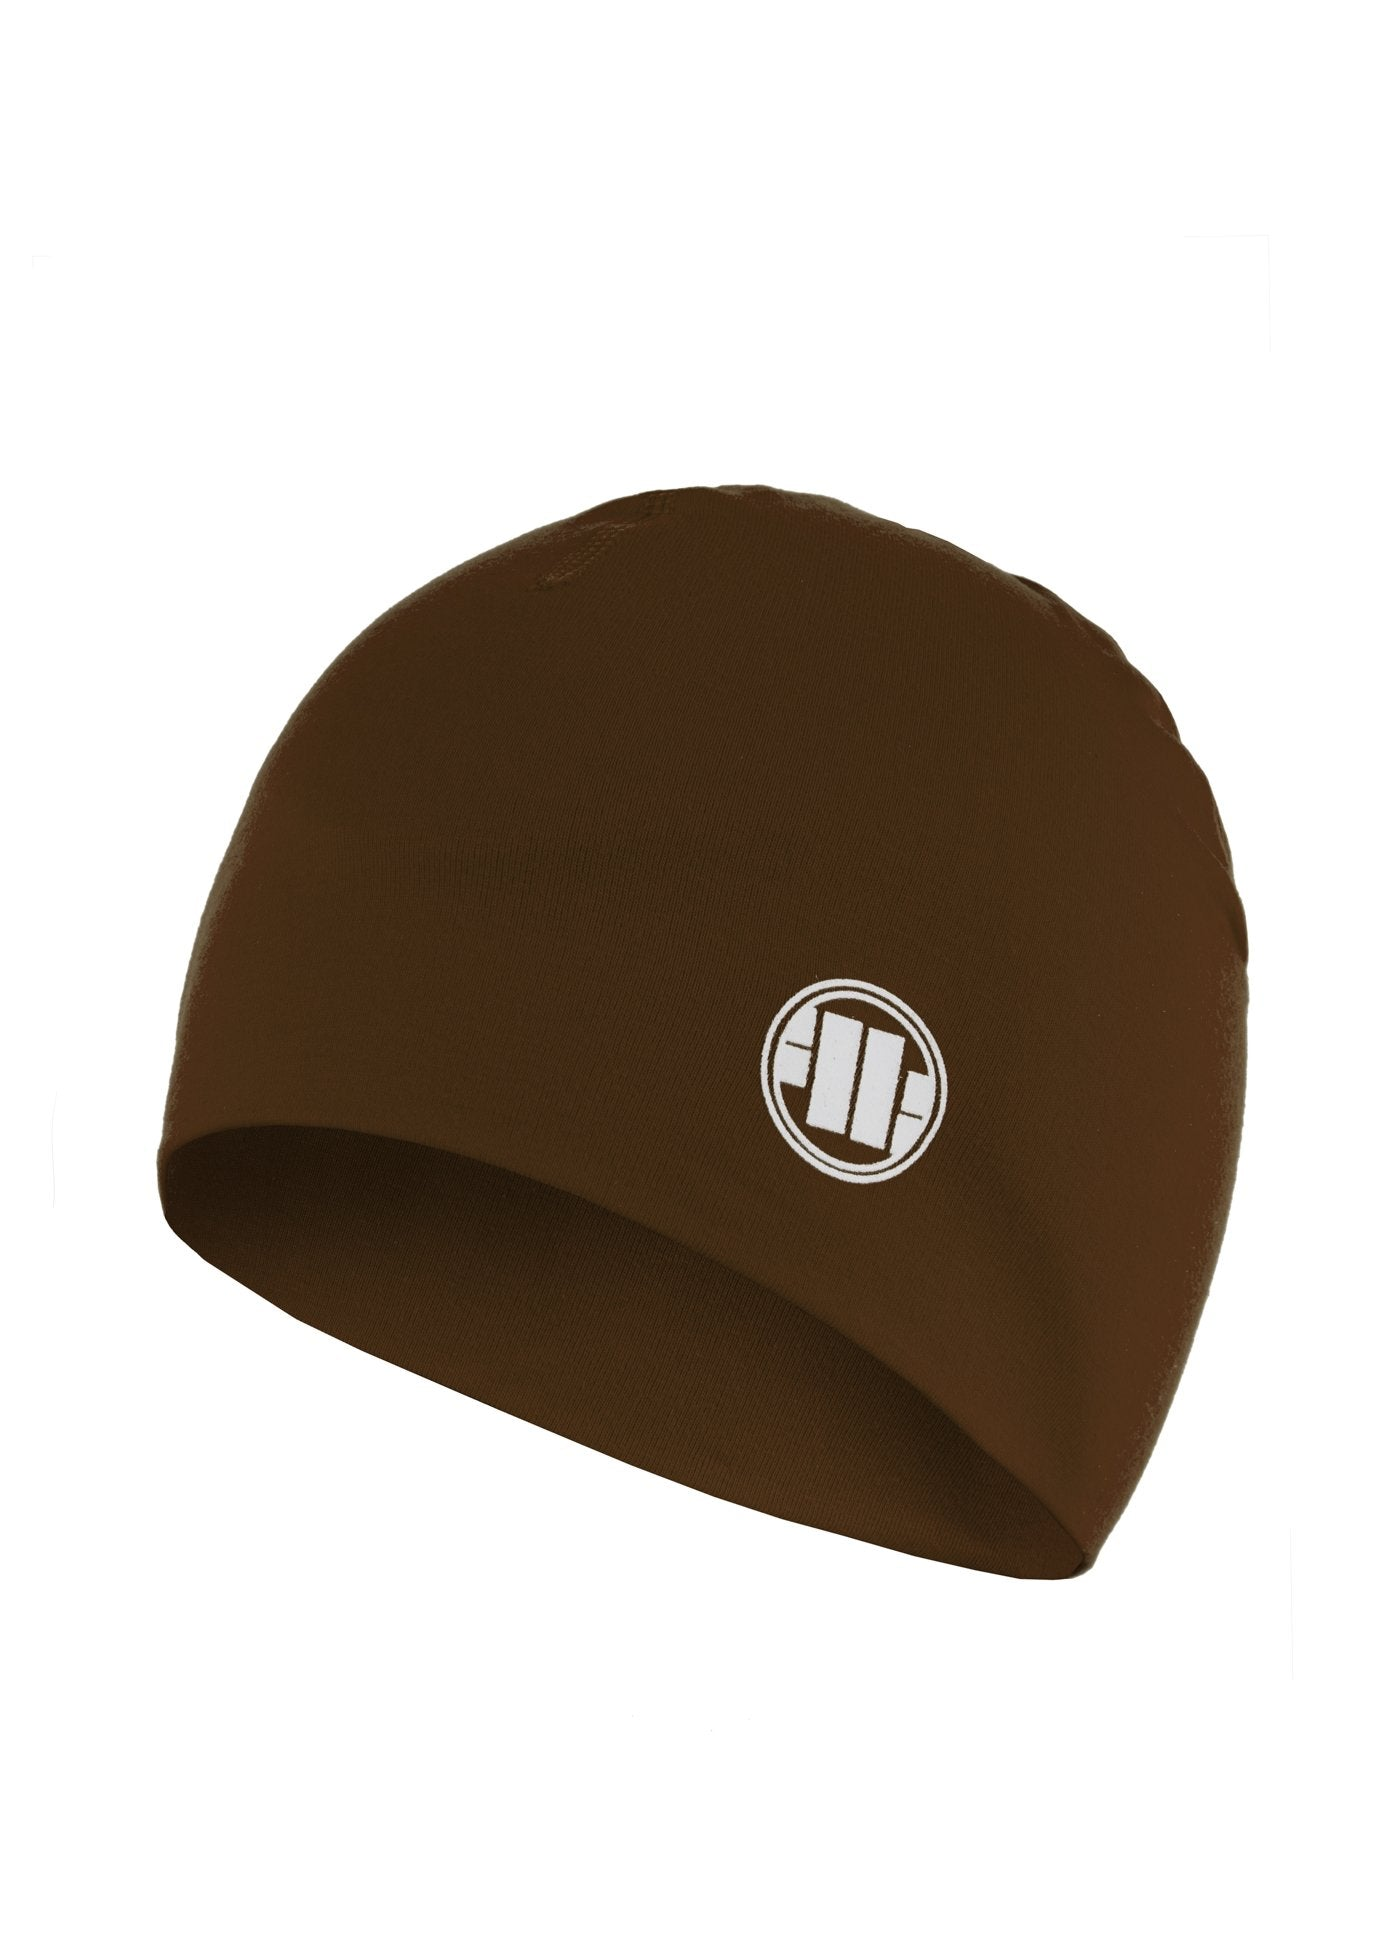 Compression Beanie SMALL LOGO Brown - Pitbull West Coast U.S.A.